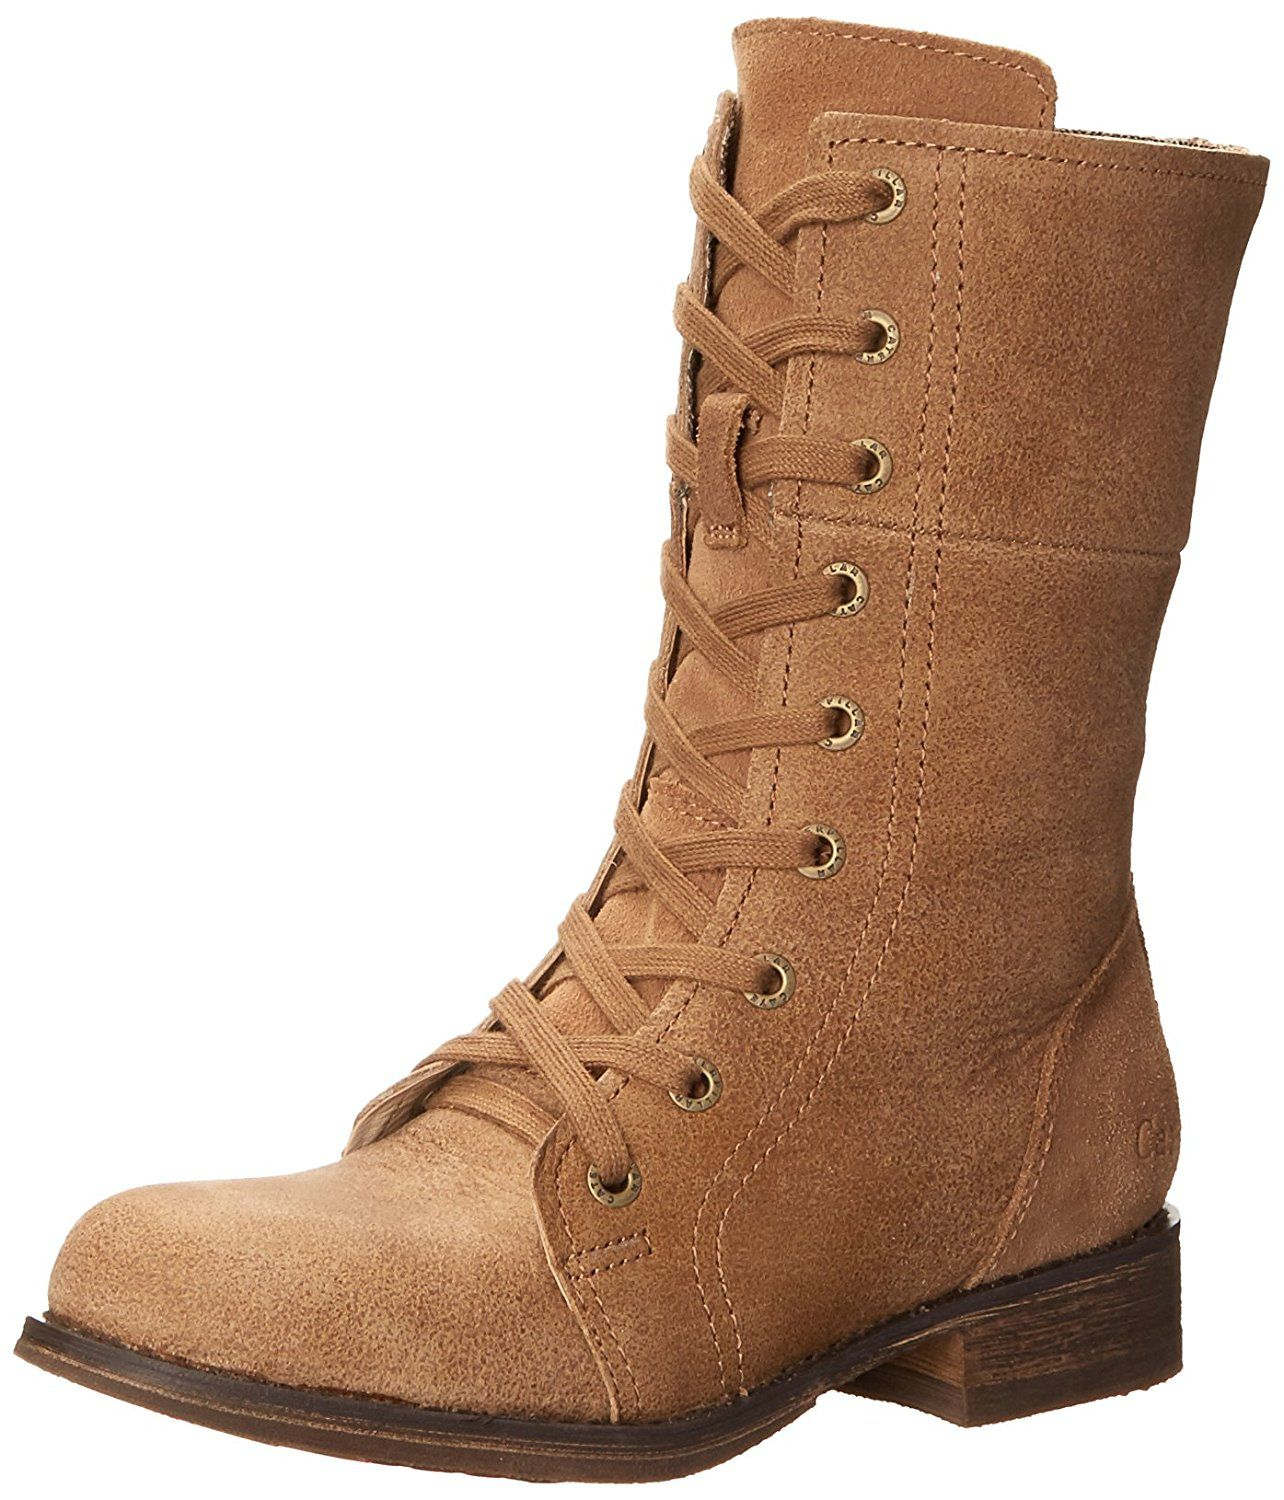 Women's Narcissa Combat Boot